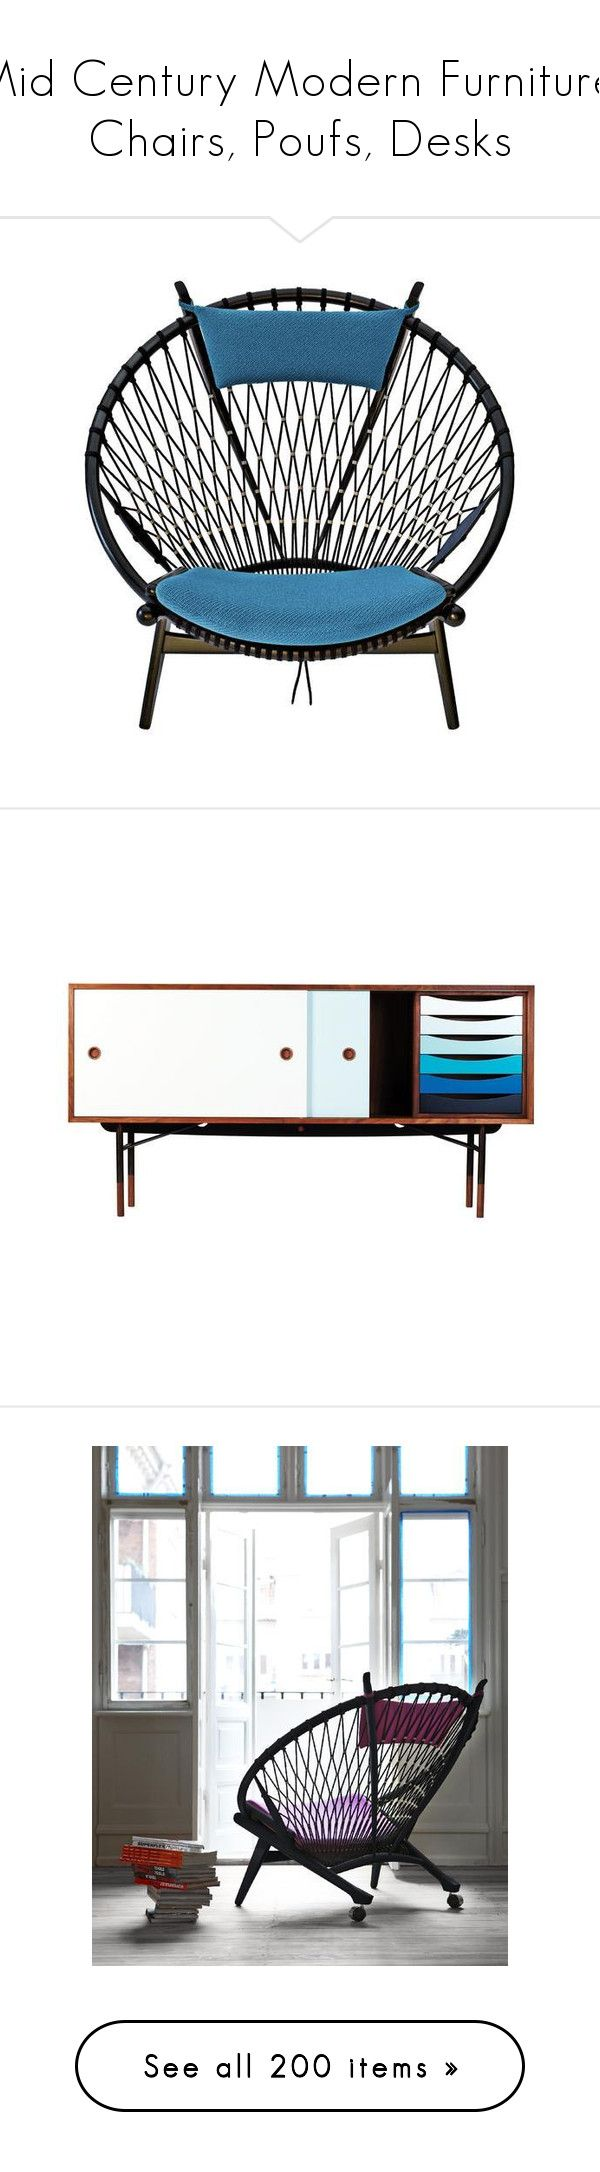 """""""Mid Century Modern Furniture, Chairs, Poufs, Desks"""" by haikuandkysses on Polyvore featuring home, furniture, chairs, storage & shelves, sideboards, desks, home decor, holiday decorations, shoe storage box and british home decor"""